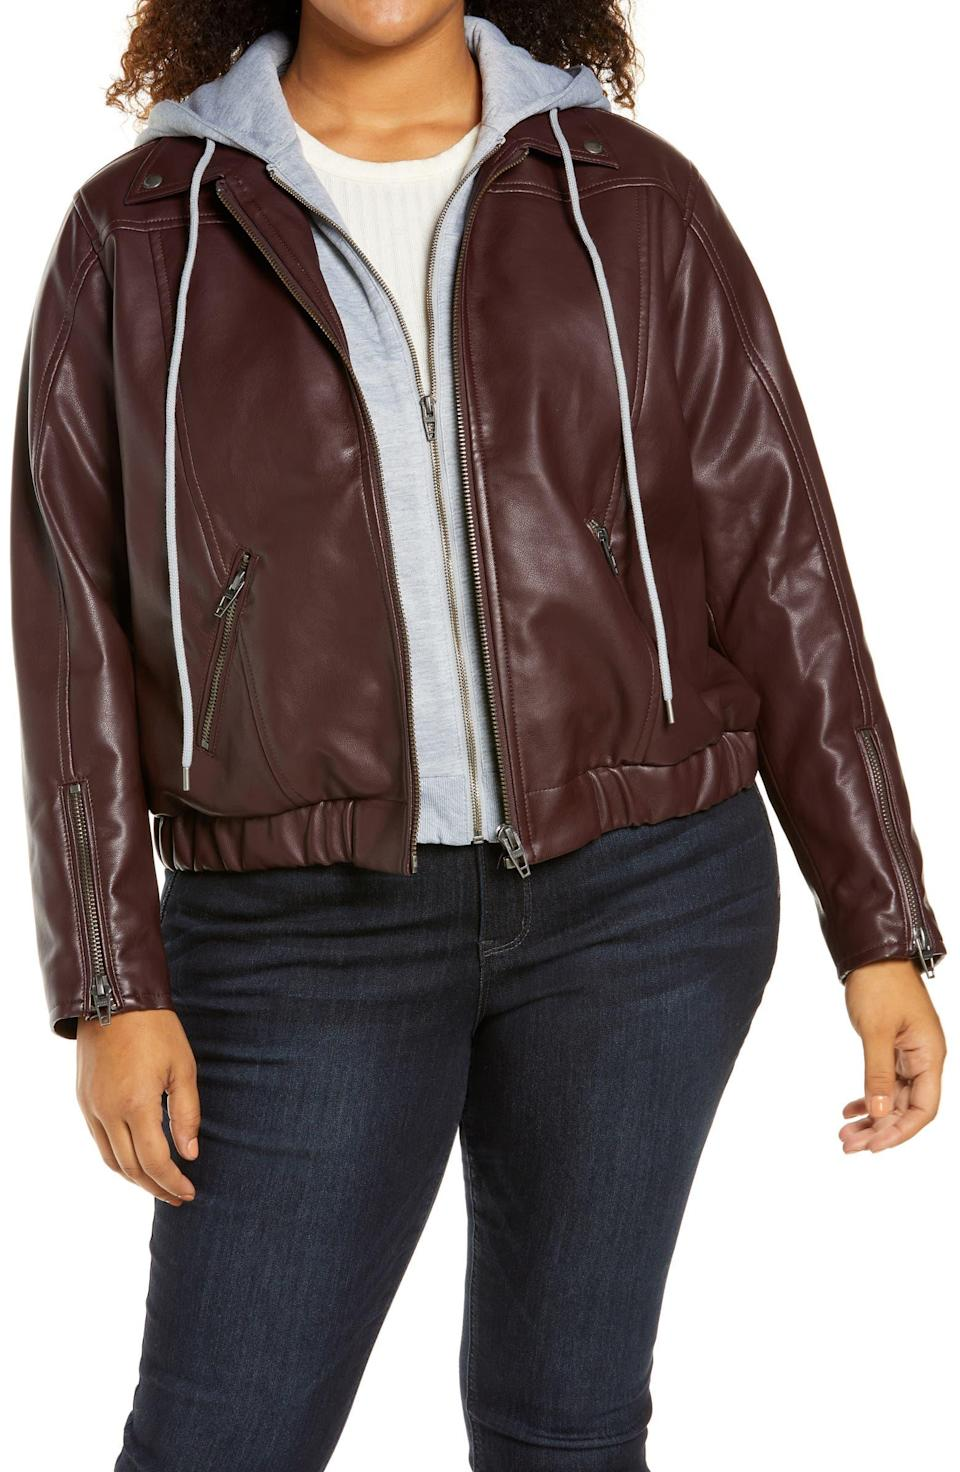 """<br><br><strong>BLANKNYC</strong> Faux Leather Bomber Jacket with Removable Hood, $, available at <a href=""""https://go.skimresources.com/?id=30283X879131&url=https%3A%2F%2Fwww.nordstrom.com%2Fs%2Fblanknyc-faux-leather-bomber-jacket-with-removable-hood%2F6598425"""" rel=""""nofollow noopener"""" target=""""_blank"""" data-ylk=""""slk:Nordstrom"""" class=""""link rapid-noclick-resp"""">Nordstrom</a>"""